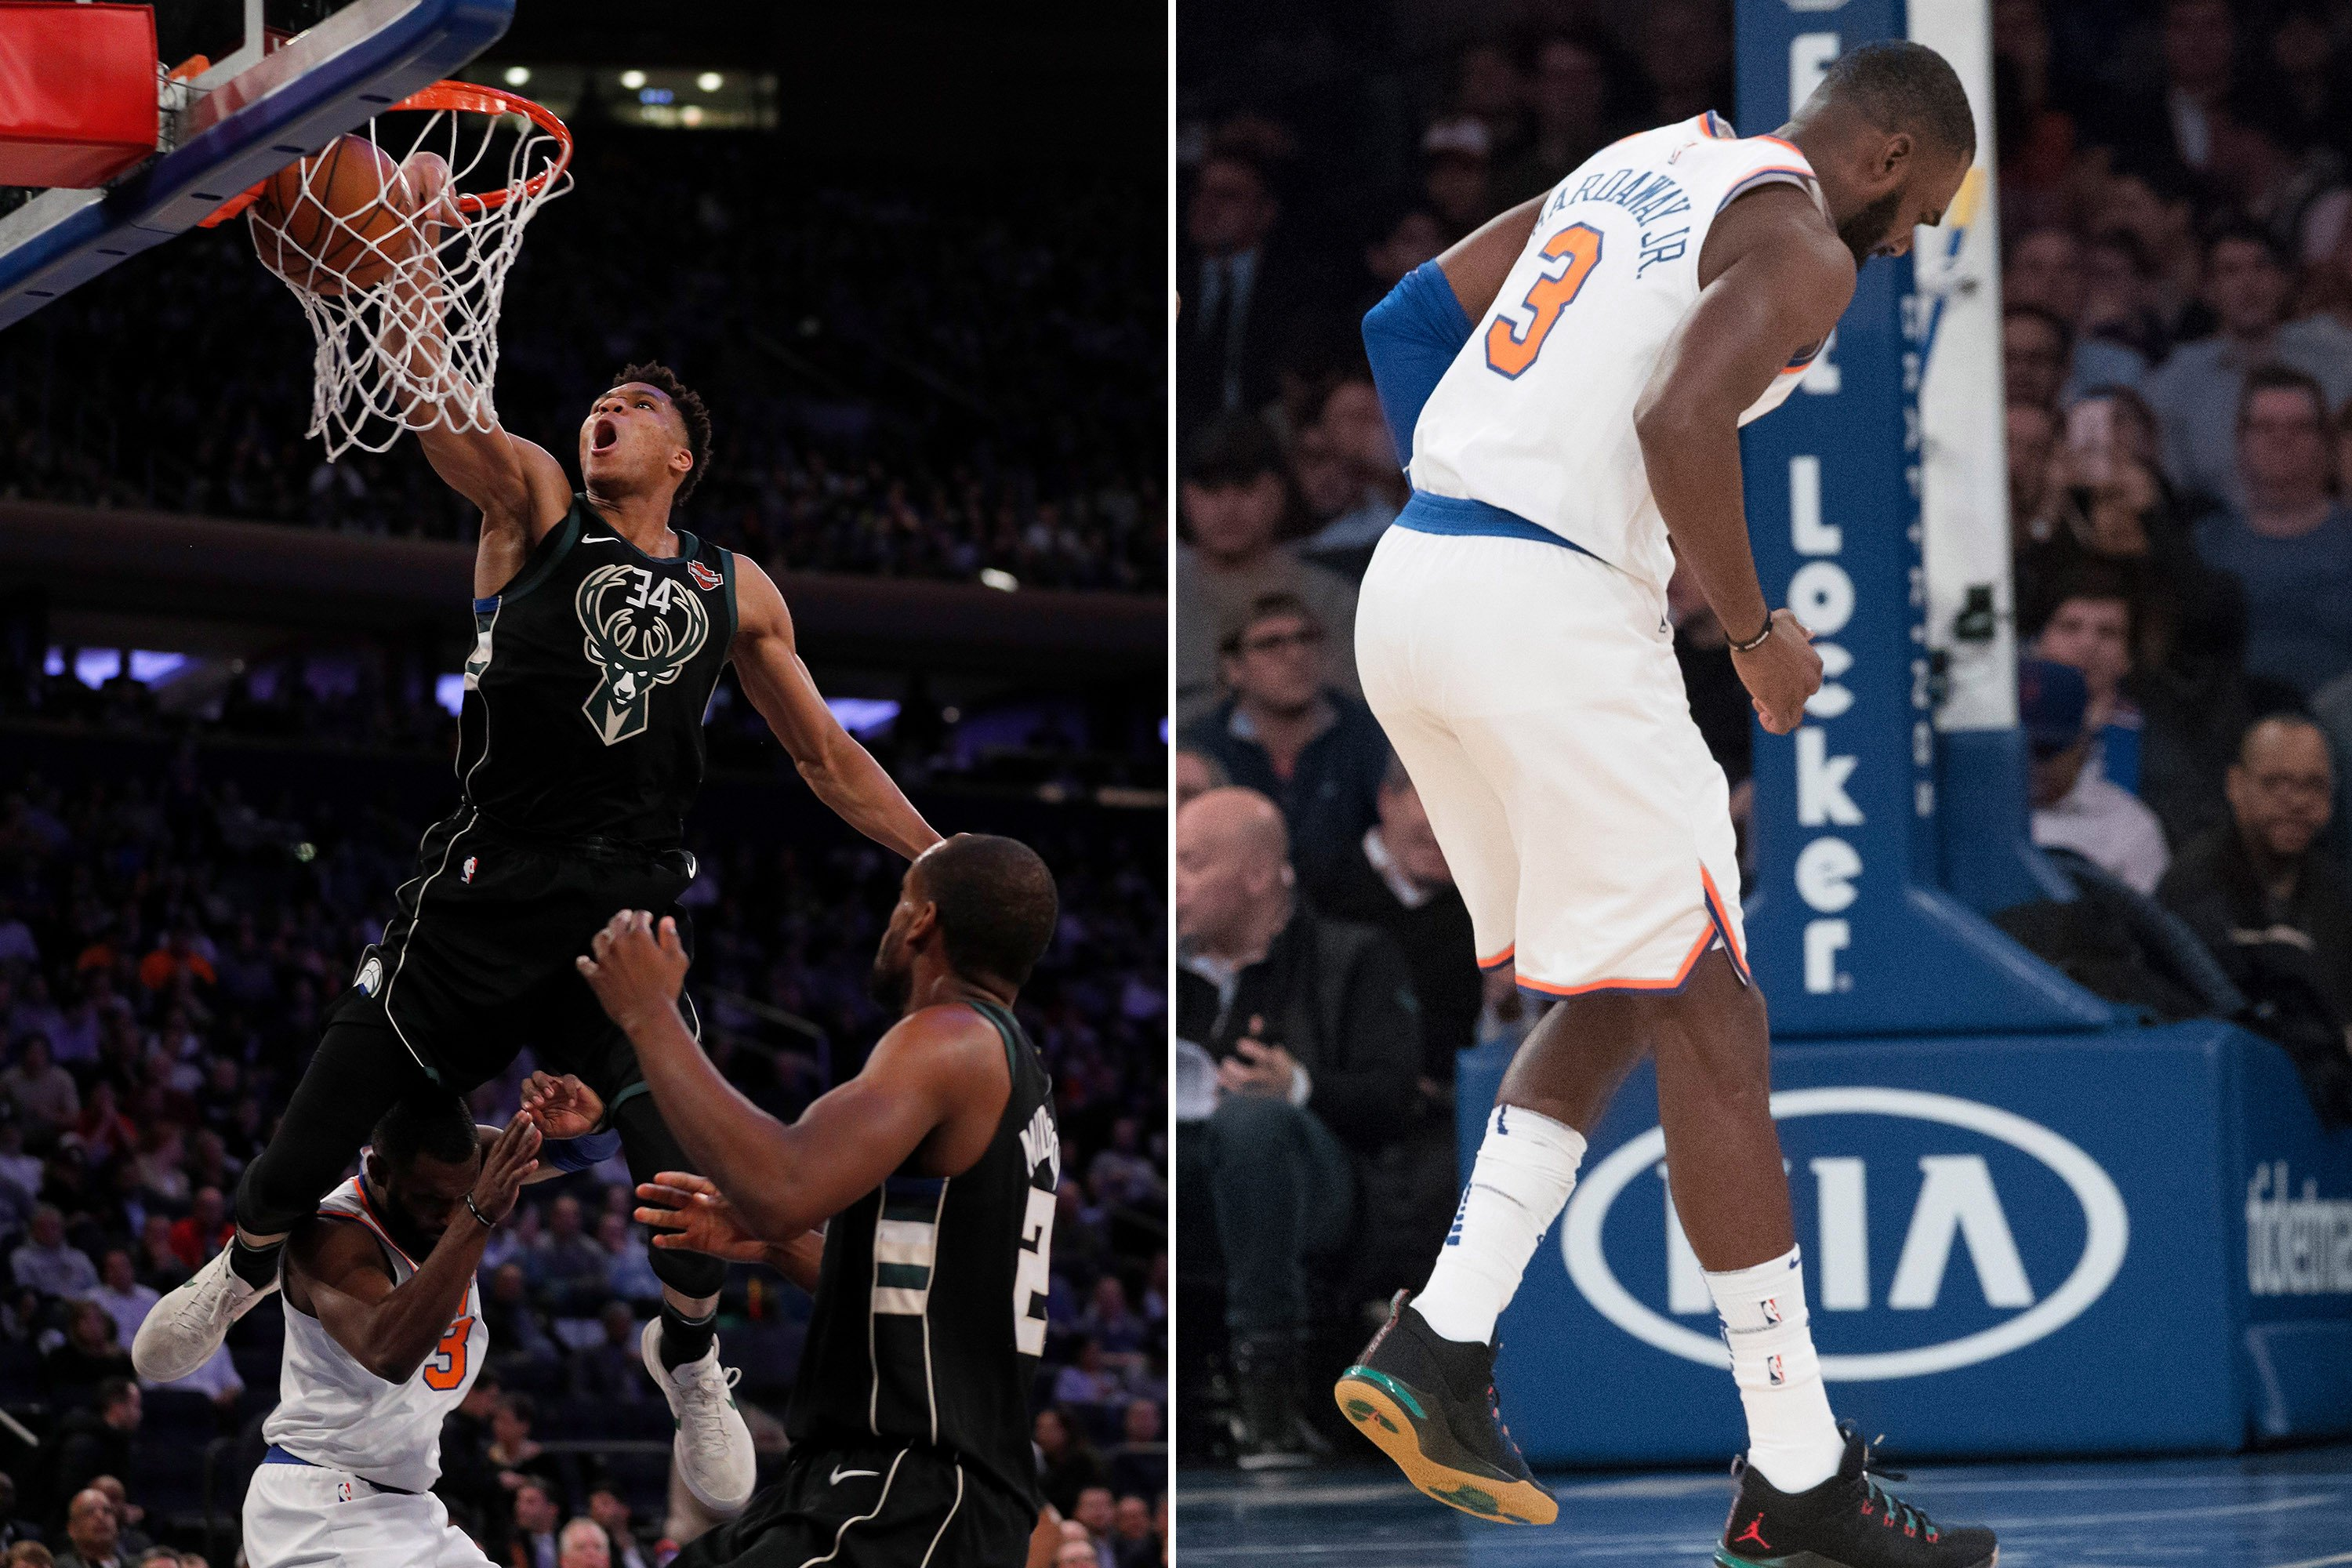 Greek Freak posterizes Tim Hardaway with over-the-body dunk